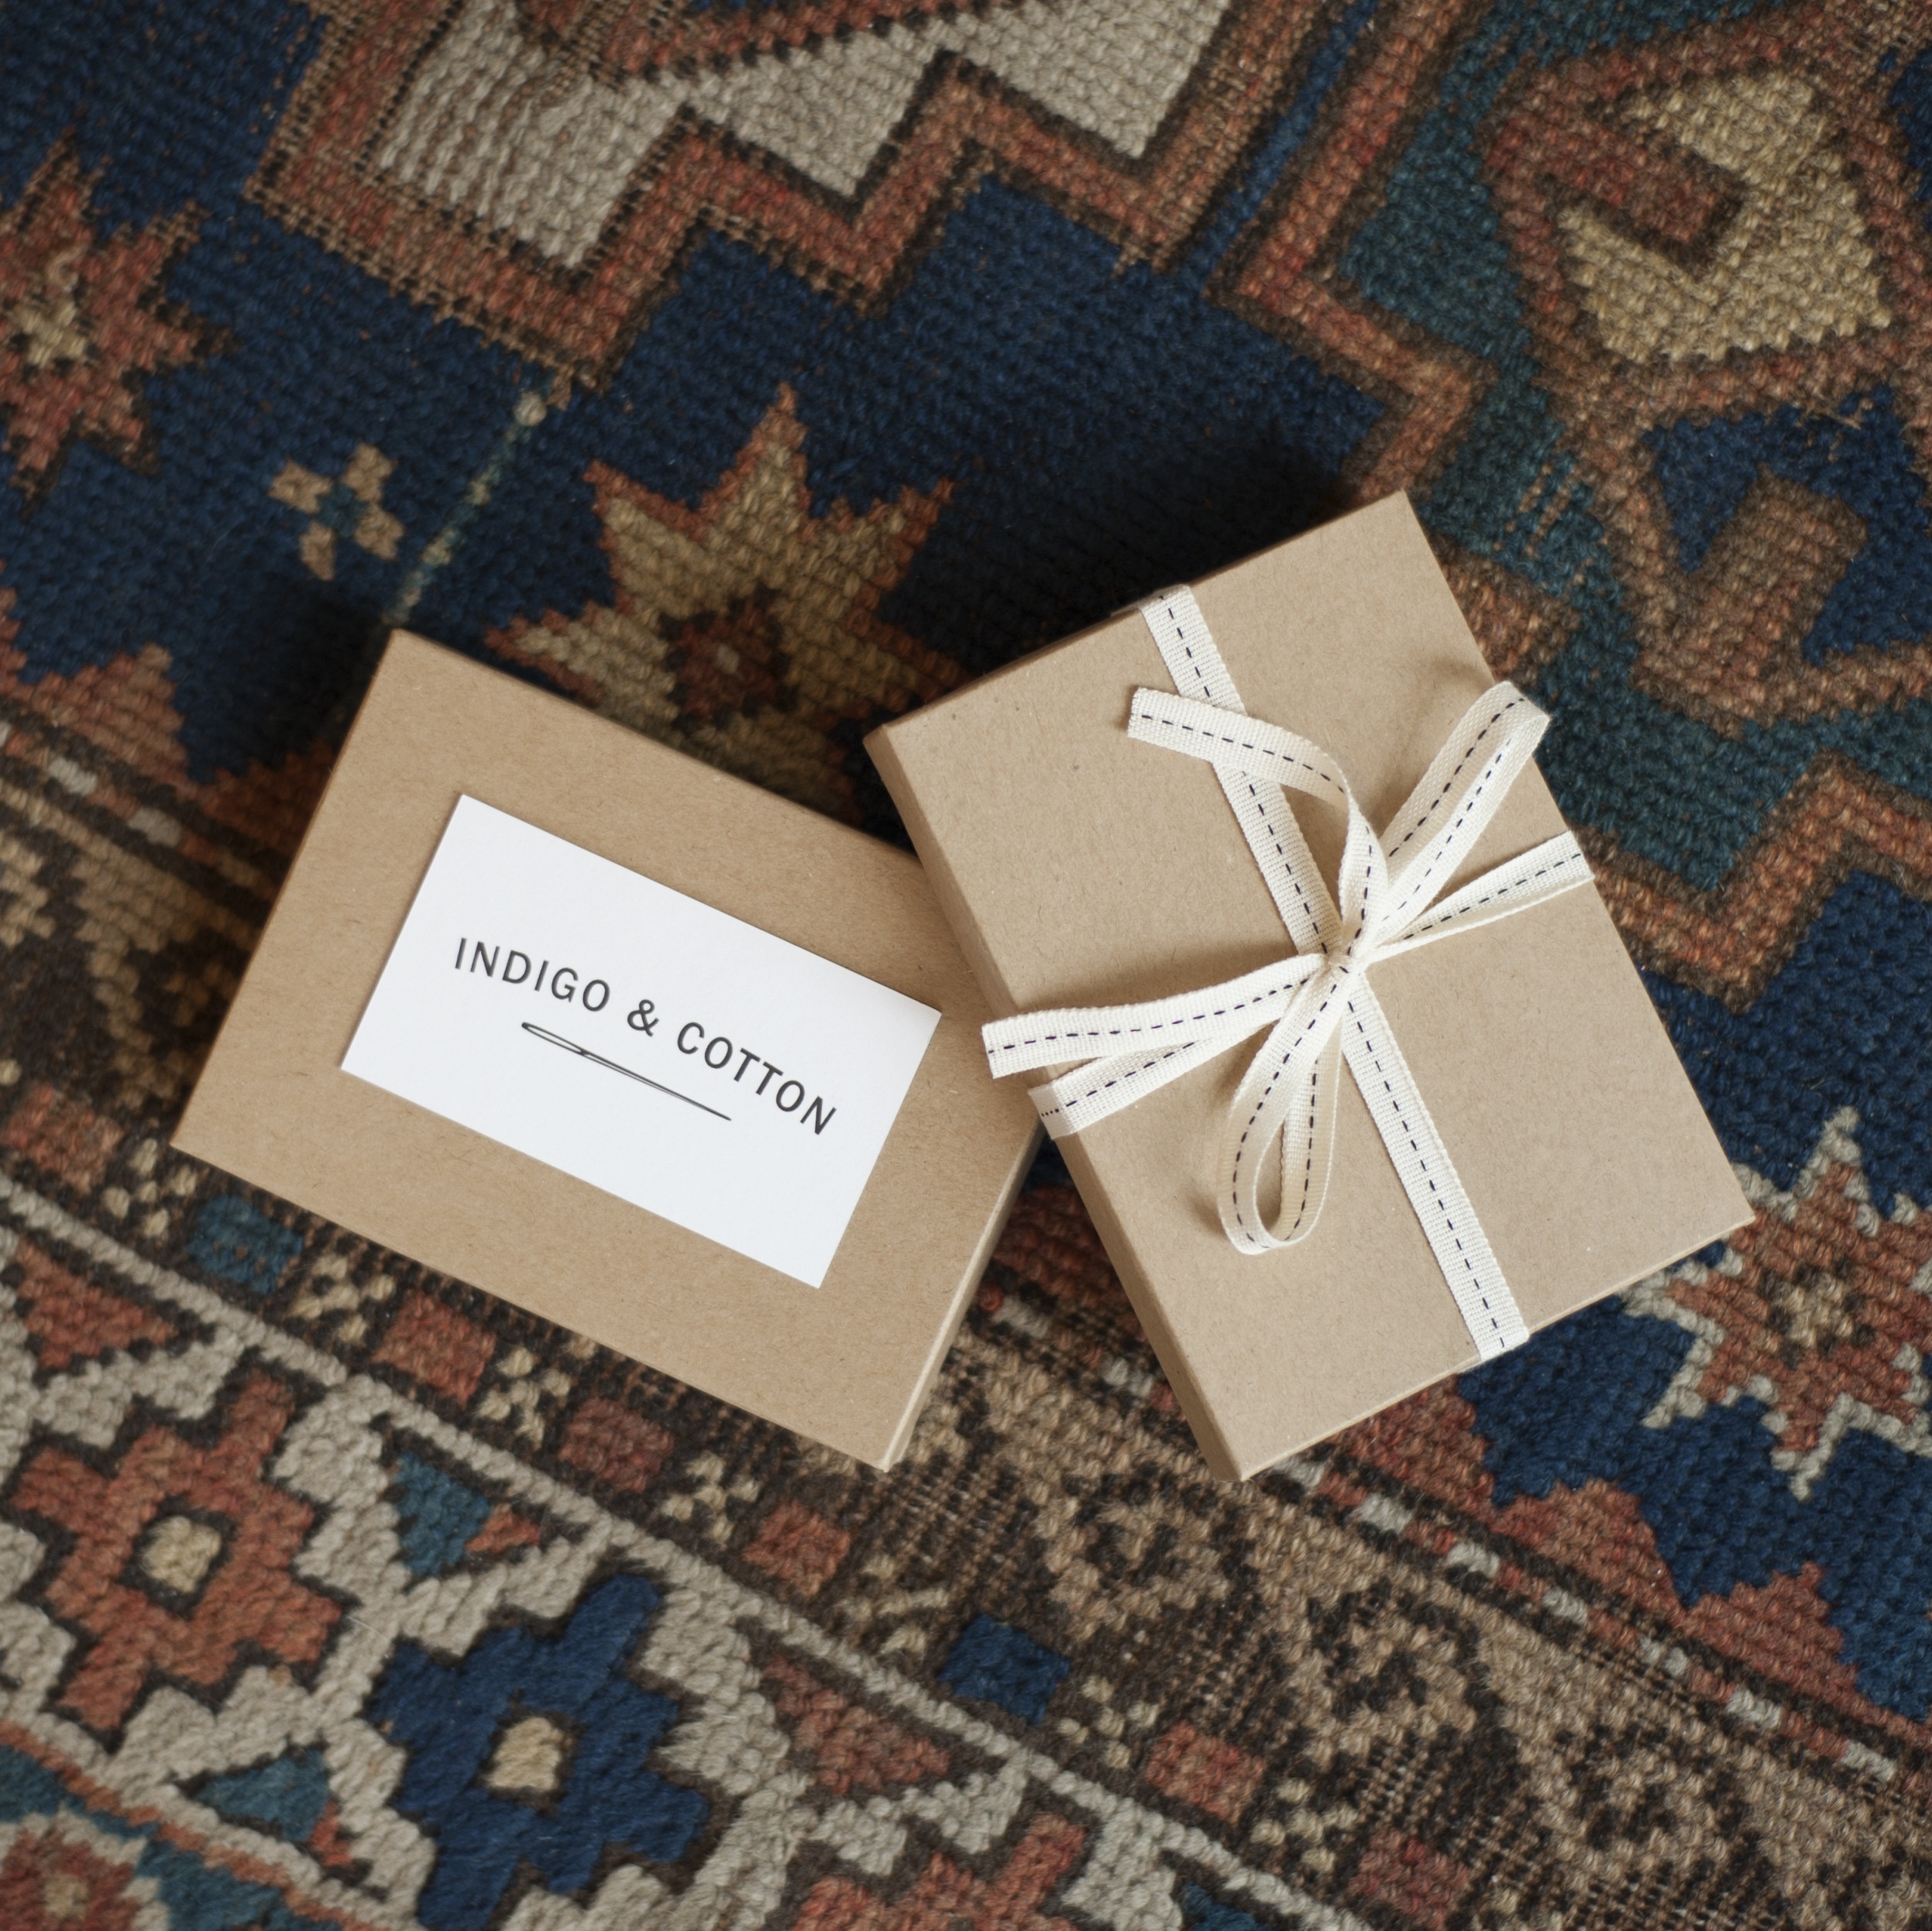 The Indigo & Cotton Gift Card